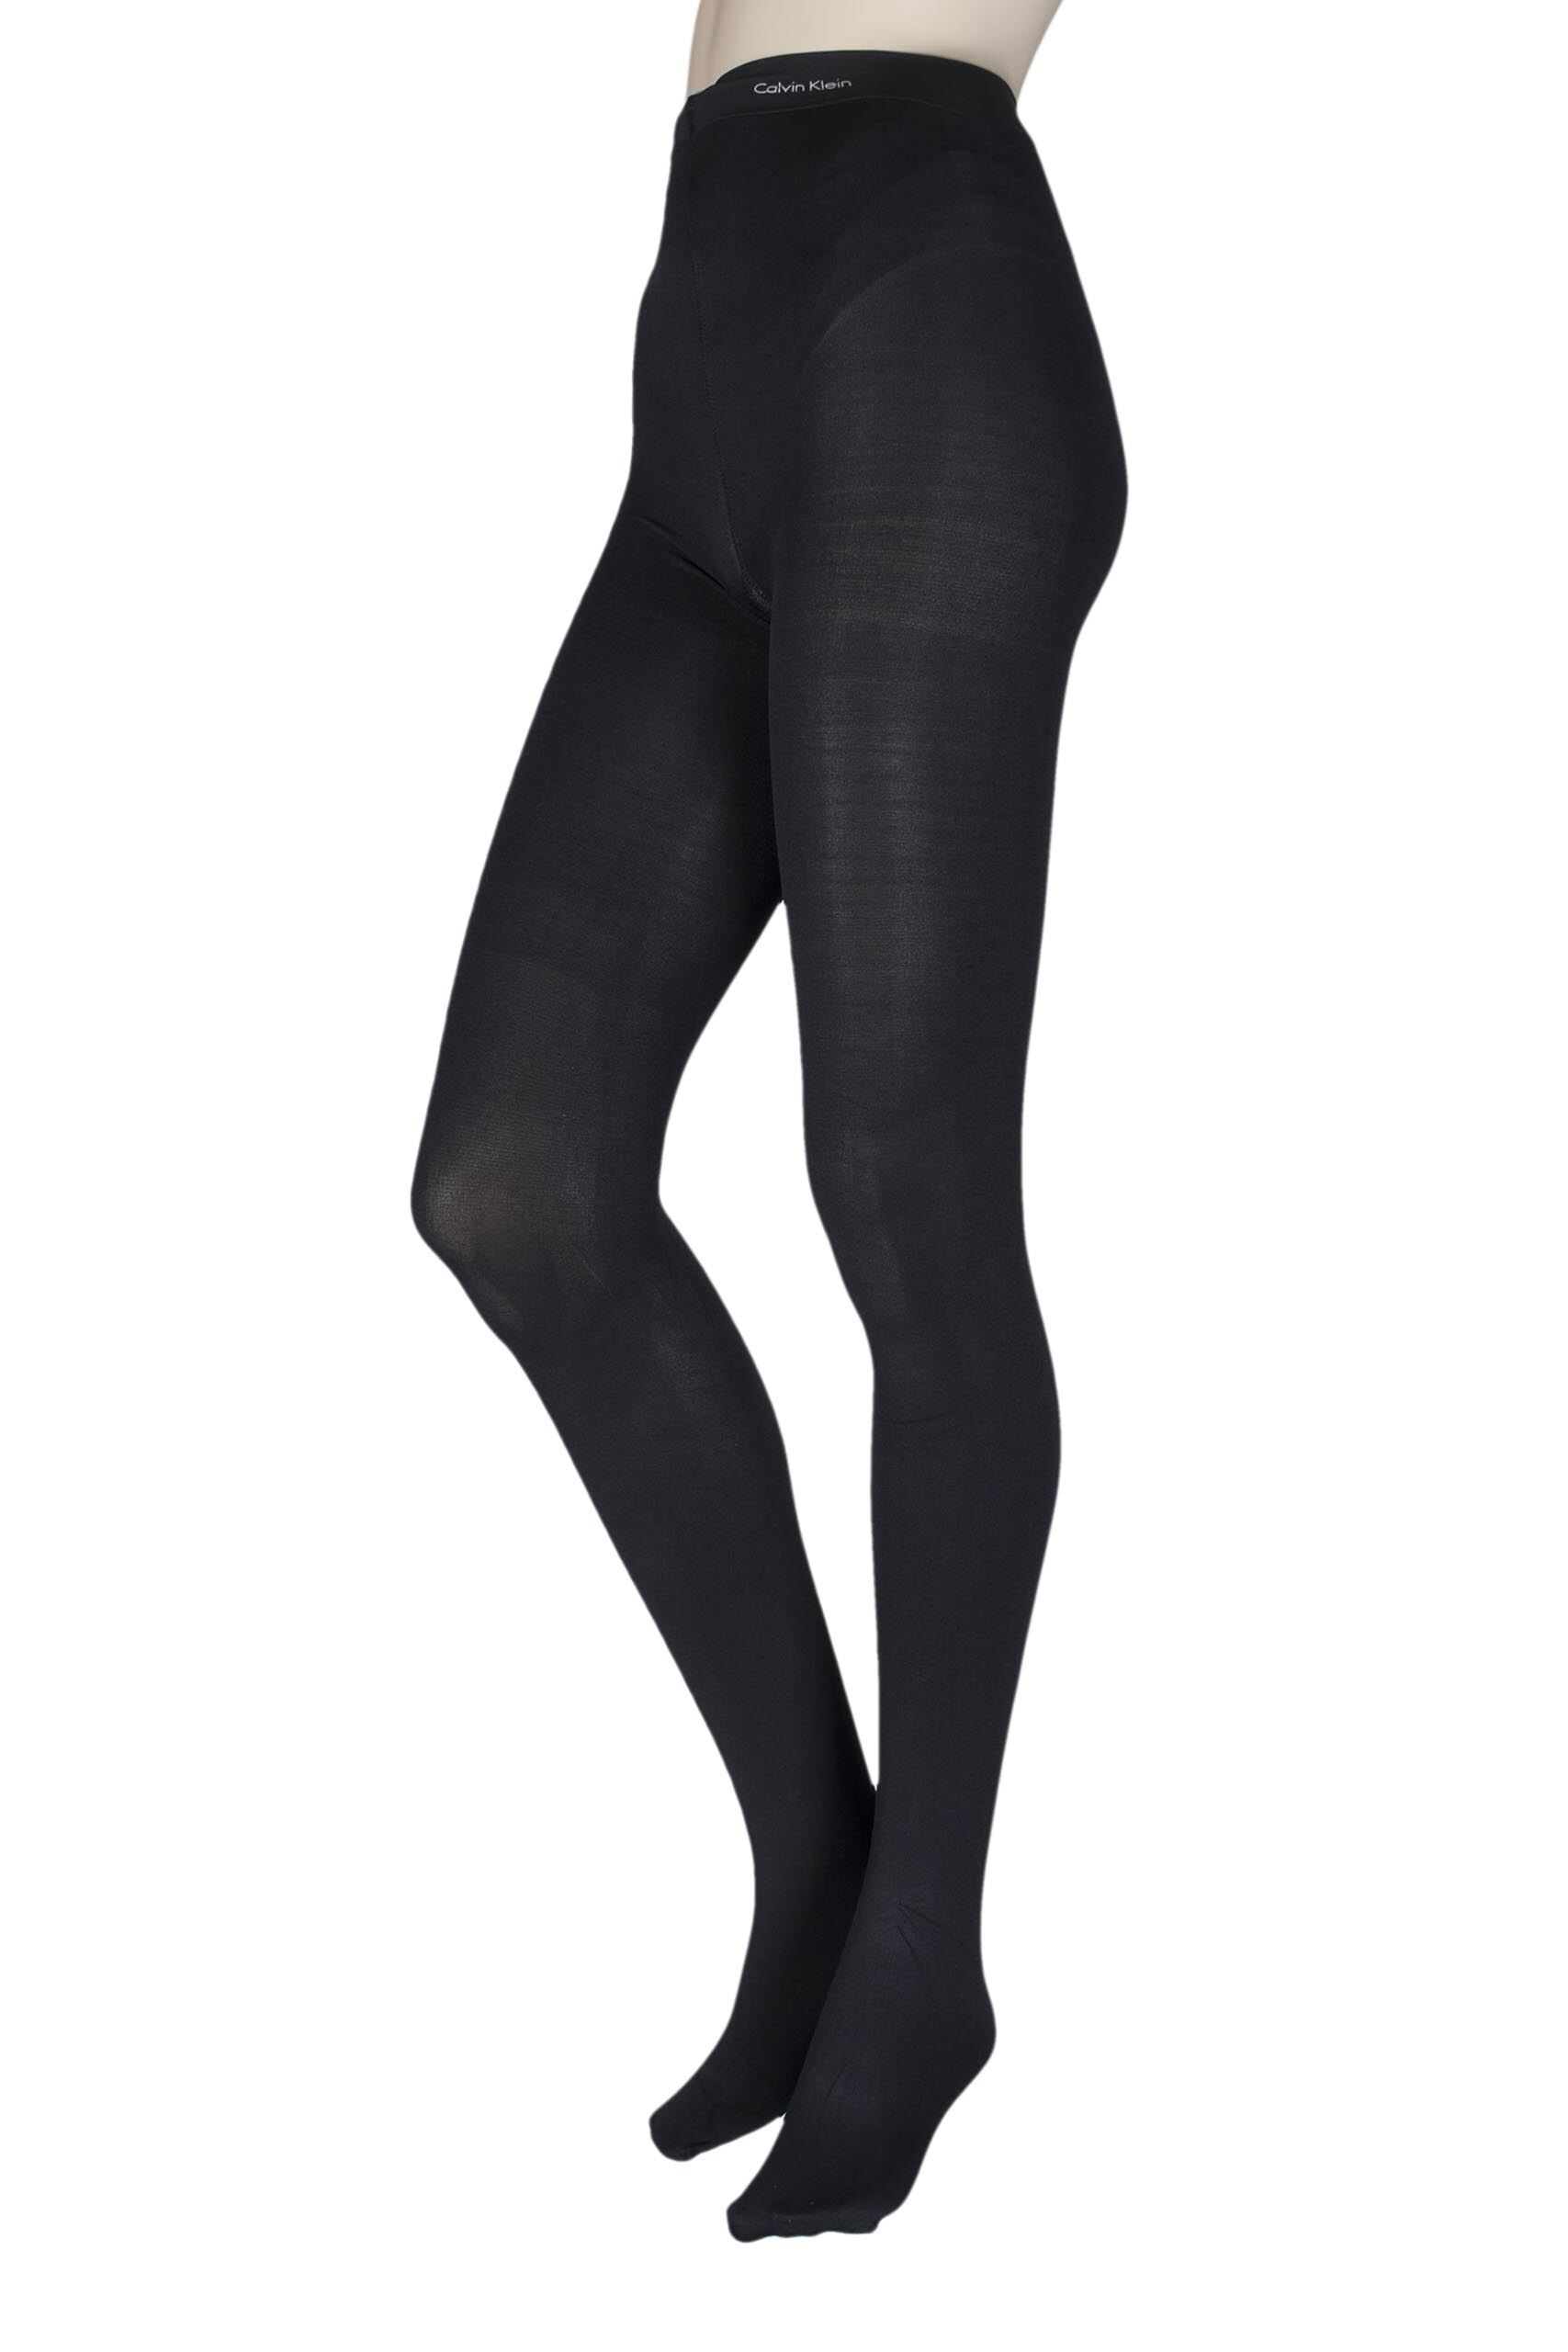 Image of 1 Pair Black Opaque Essentials Infinate Tights Ladies Small - Calvin Klein